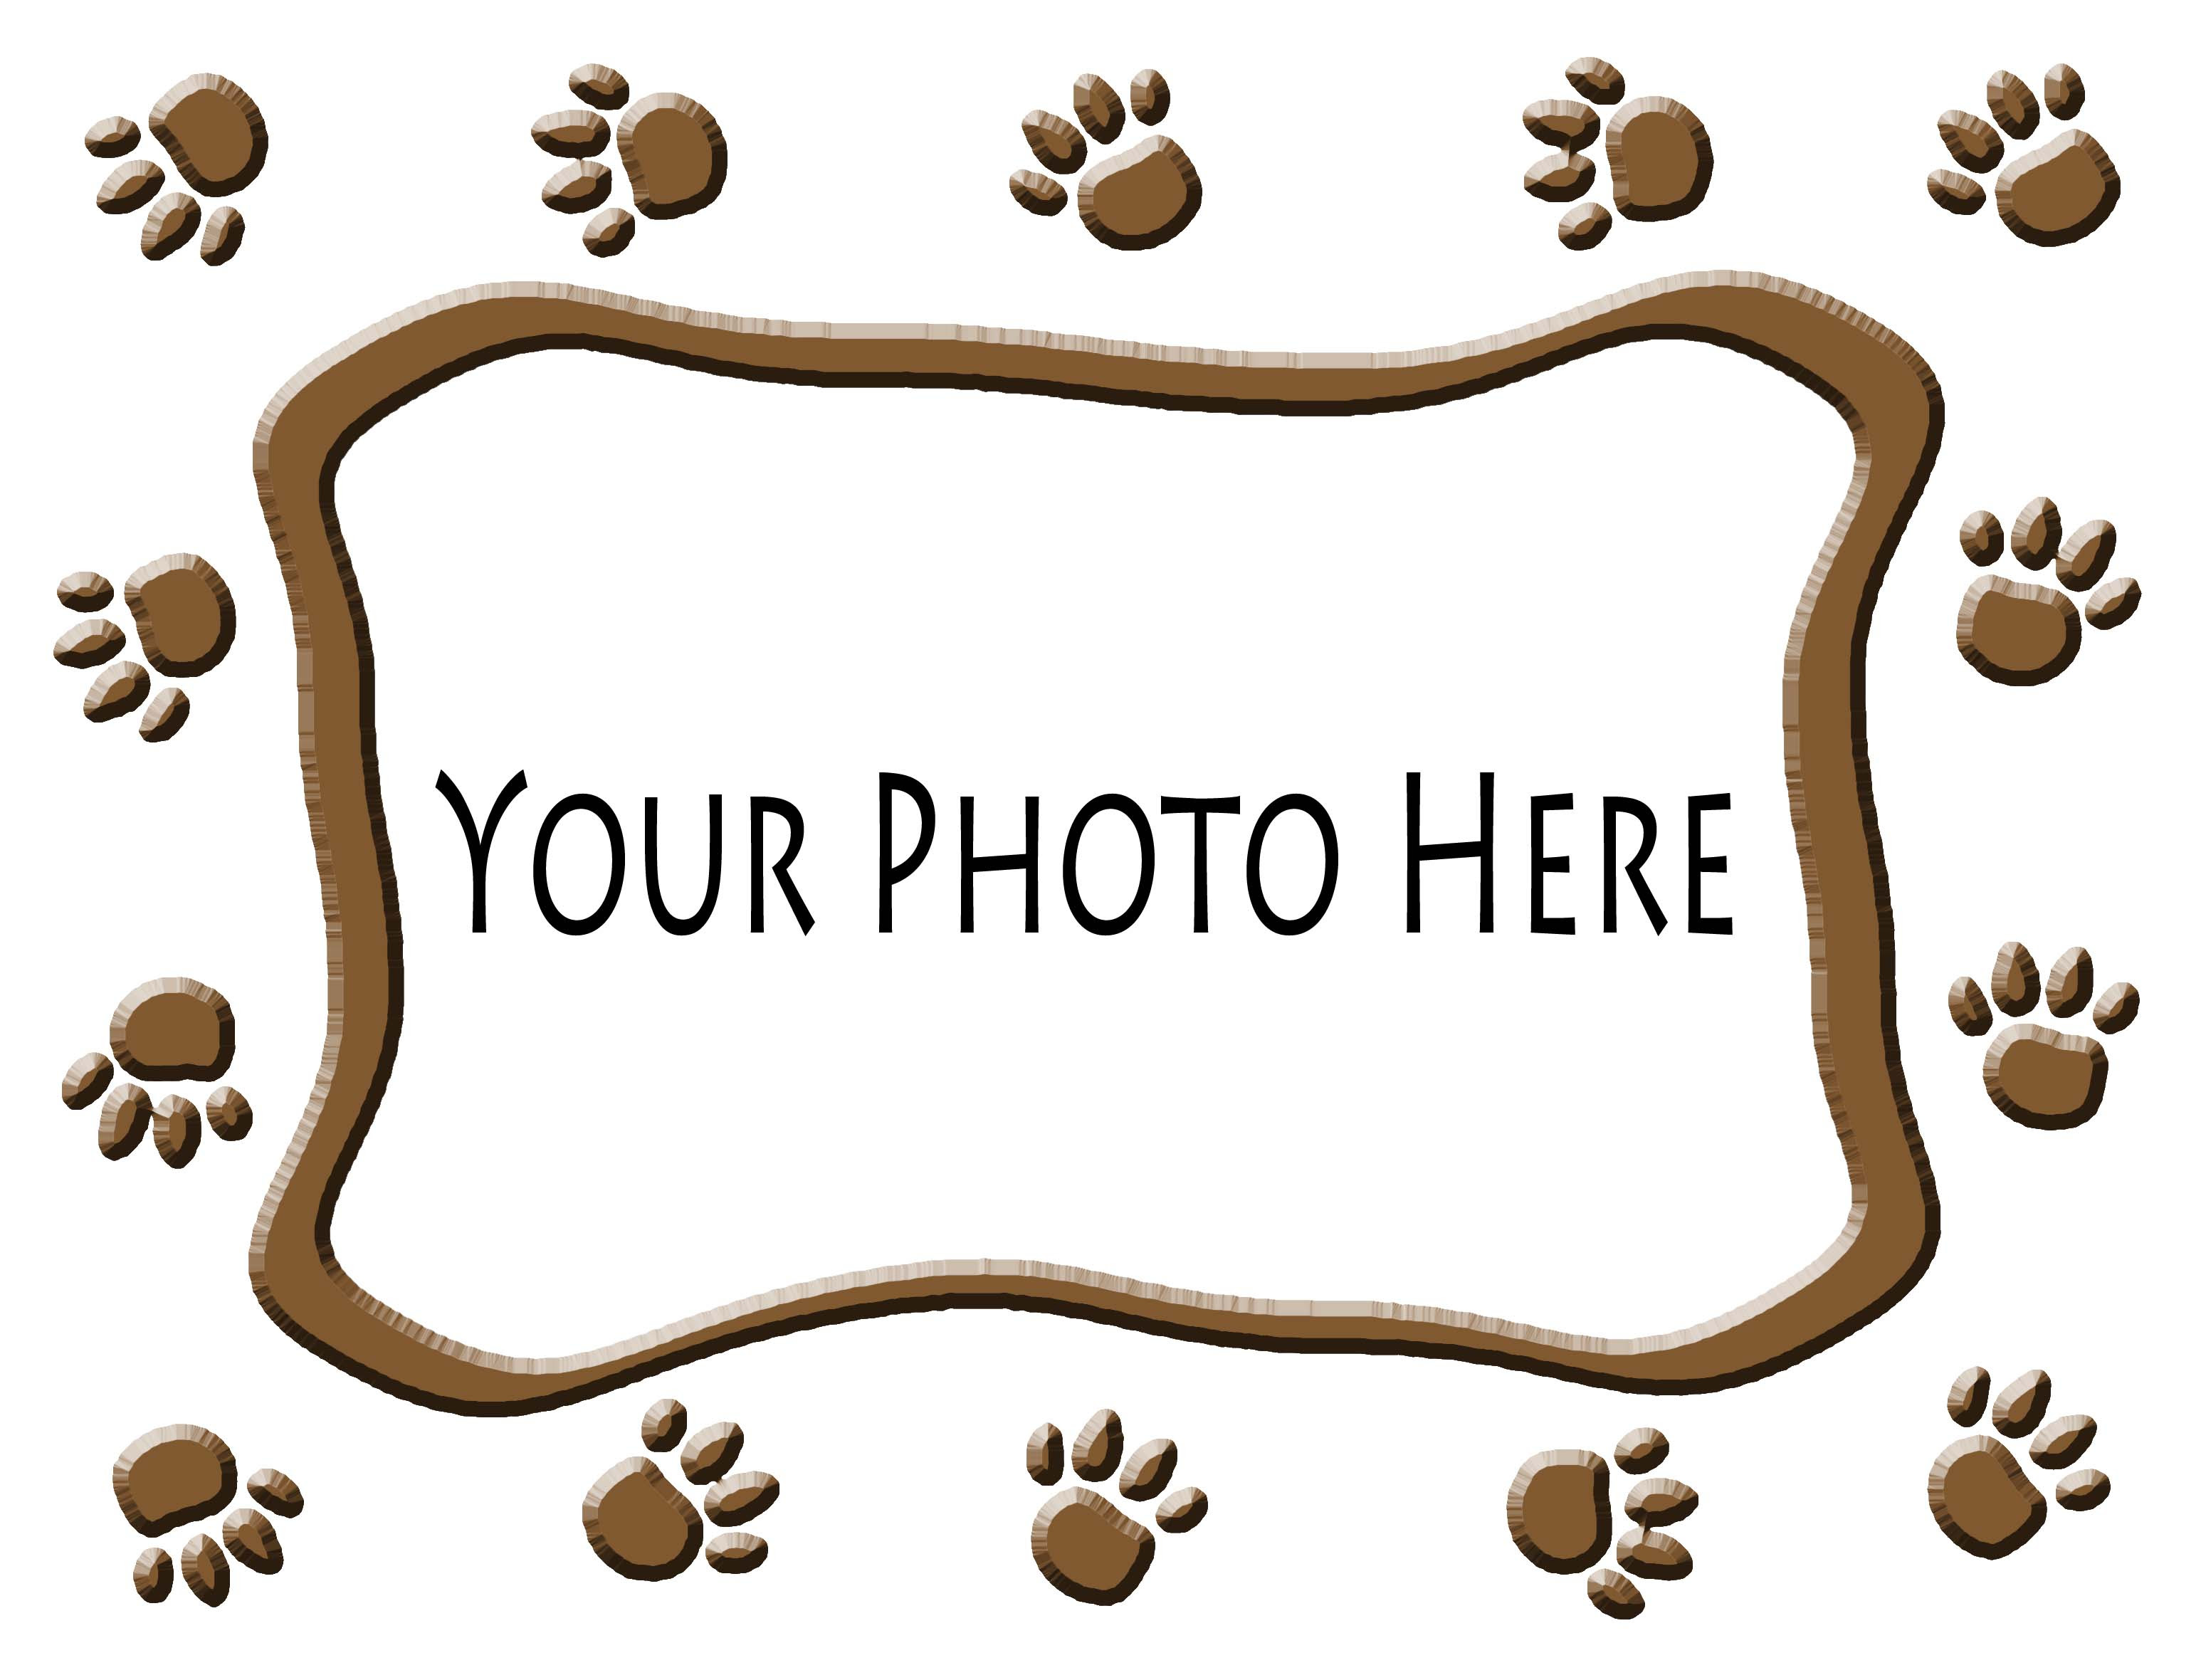 Pet Photo On T Shirt Inside A Paw Prints Frame Pattern